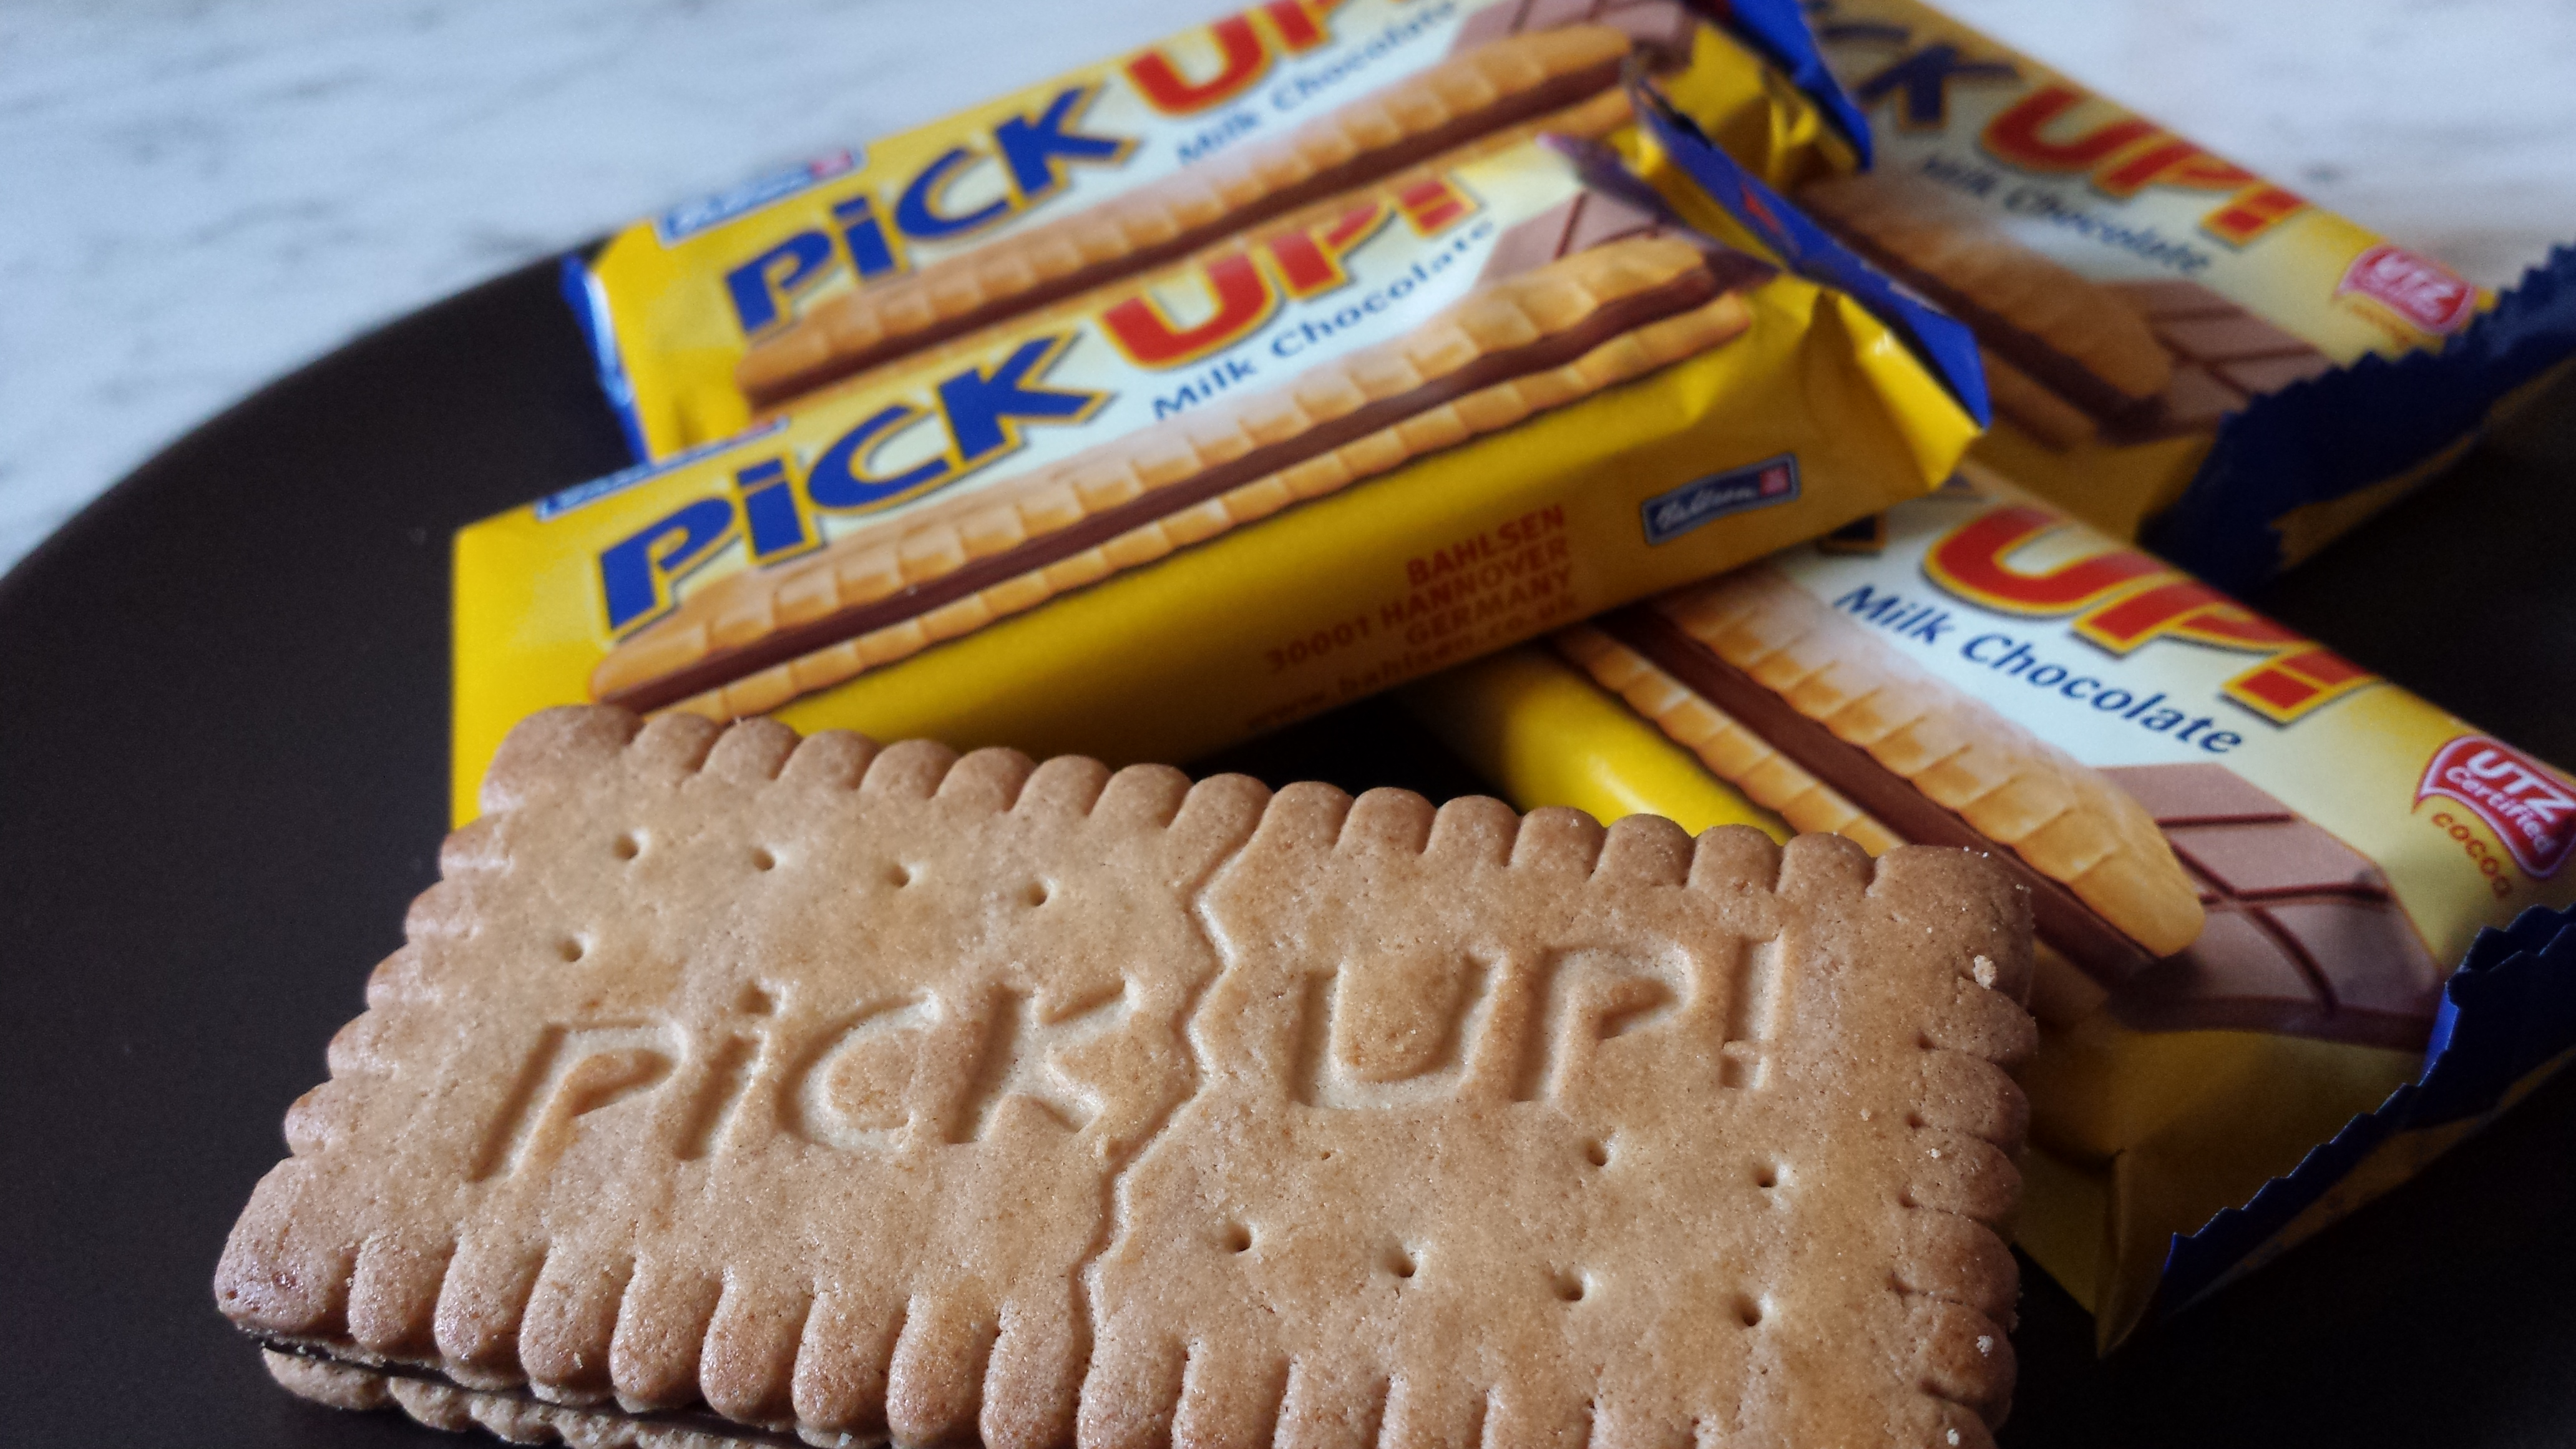 Bahlsen PICK UP! Chocolate Biscuit Bar – Review